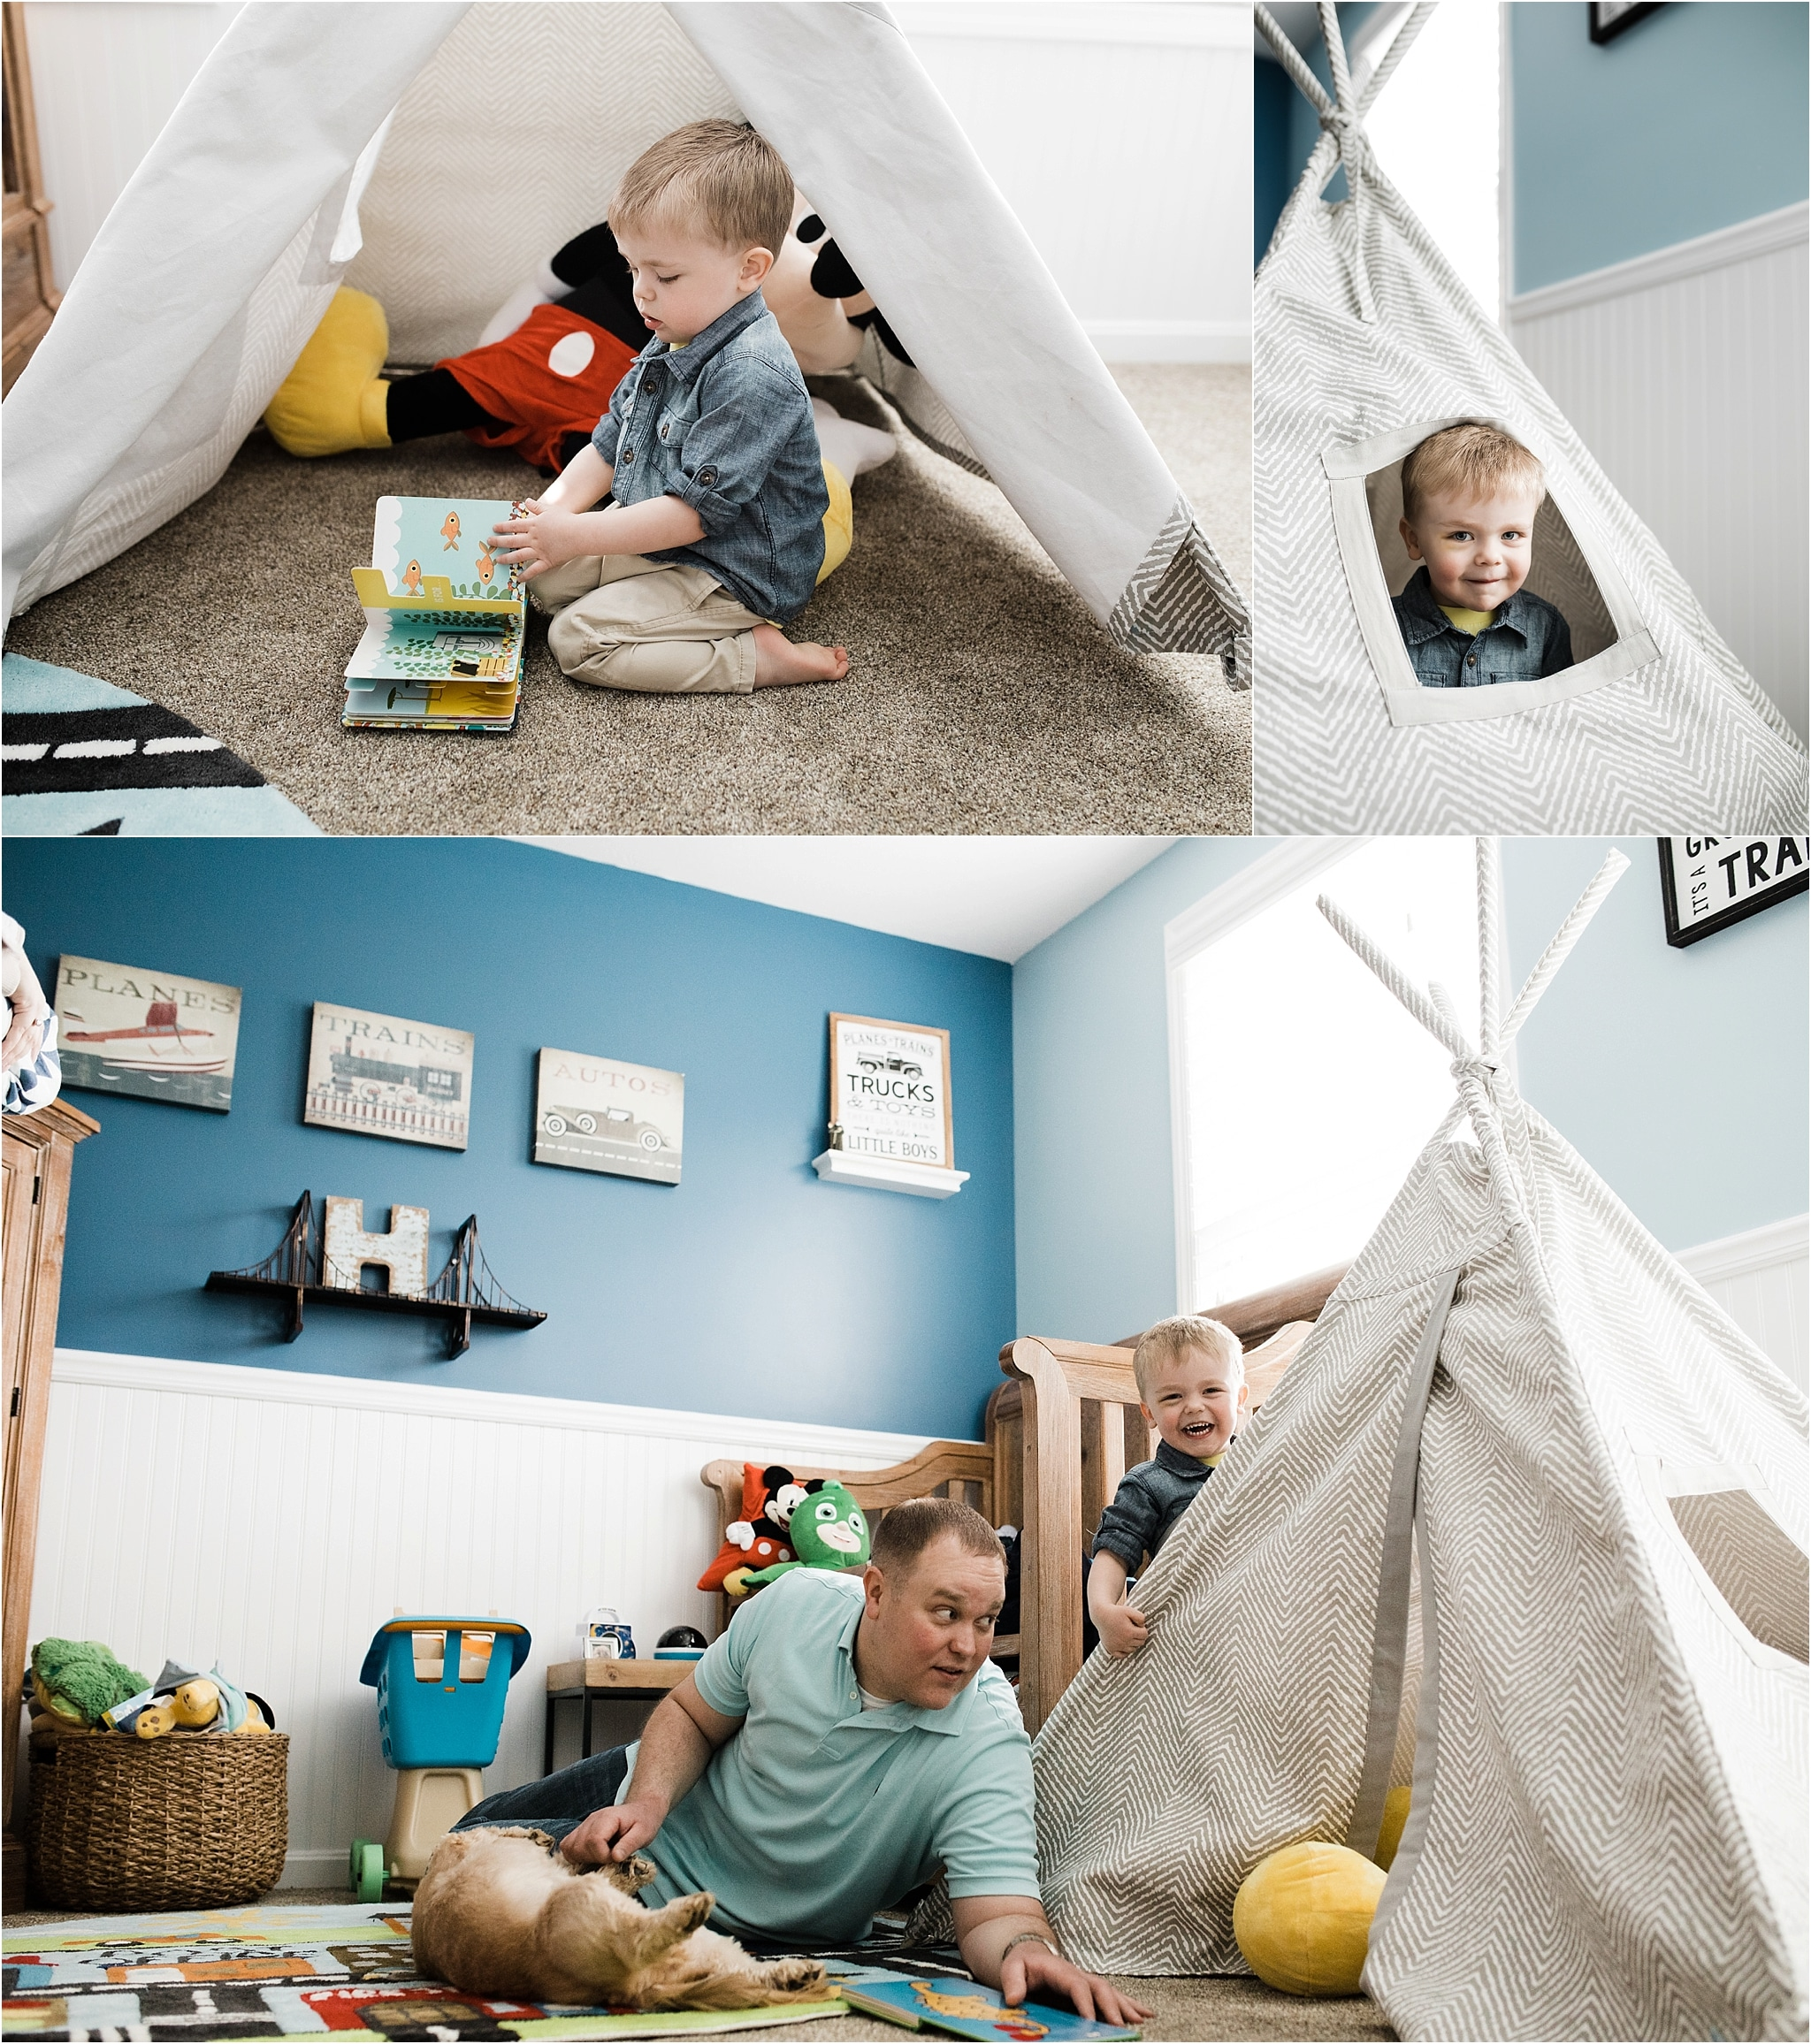 toddler reading booking and playing in teepee